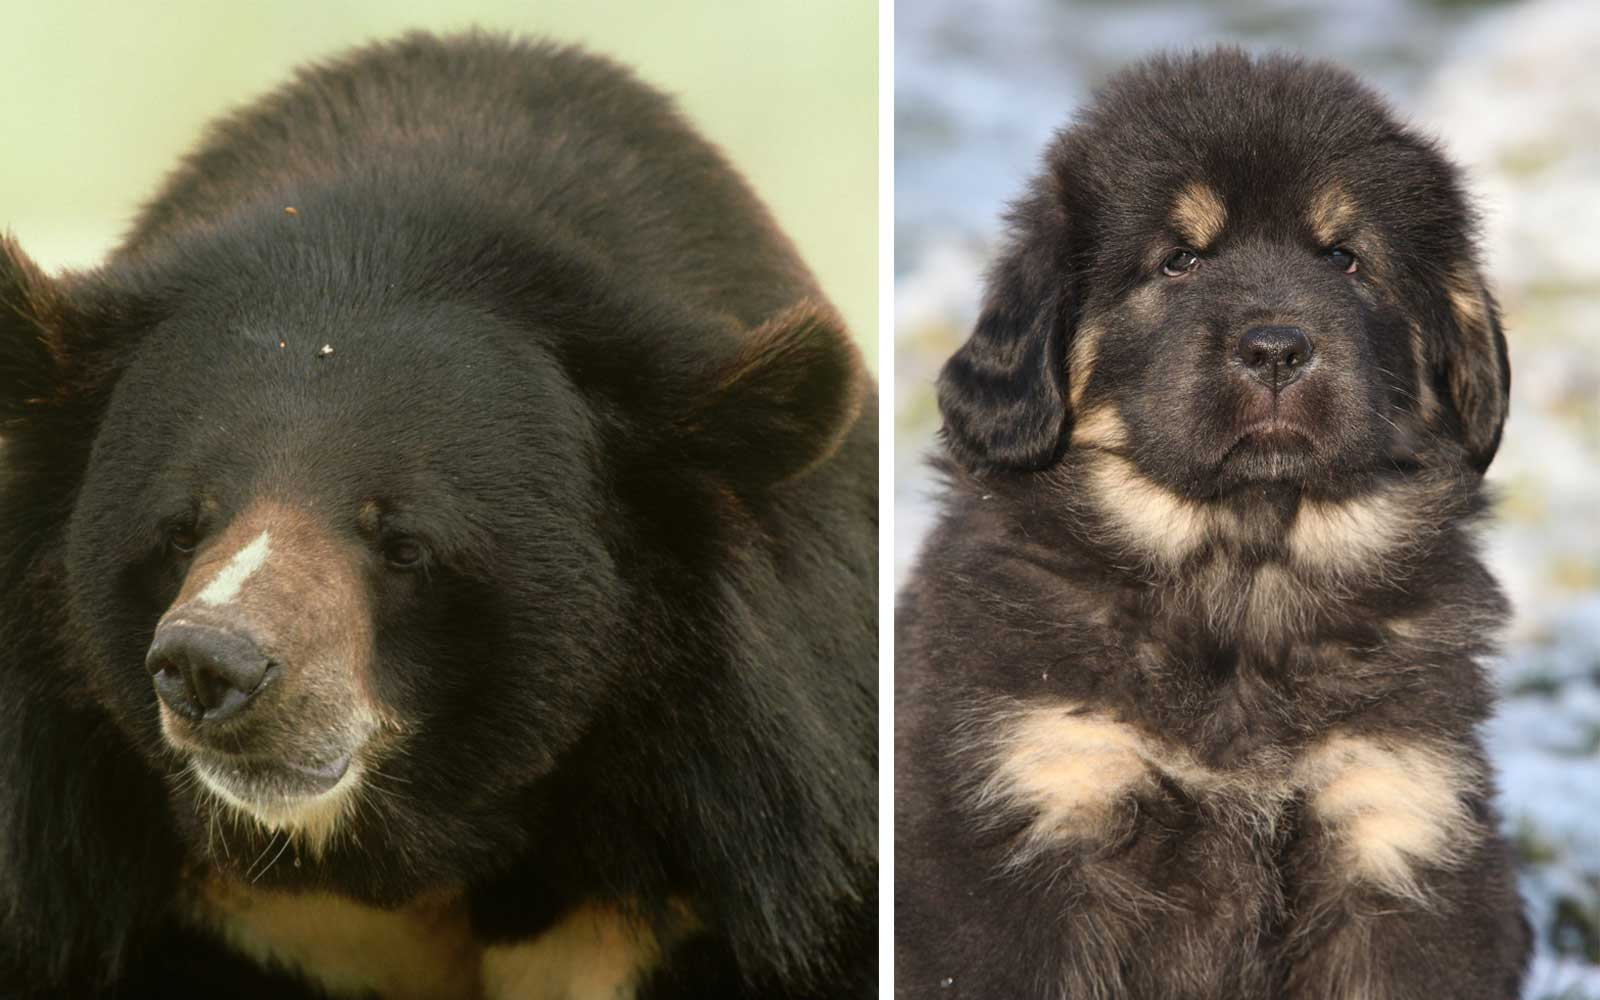 Family Thought They Bought a Puppy on Vacation, but It Was Really a Bear